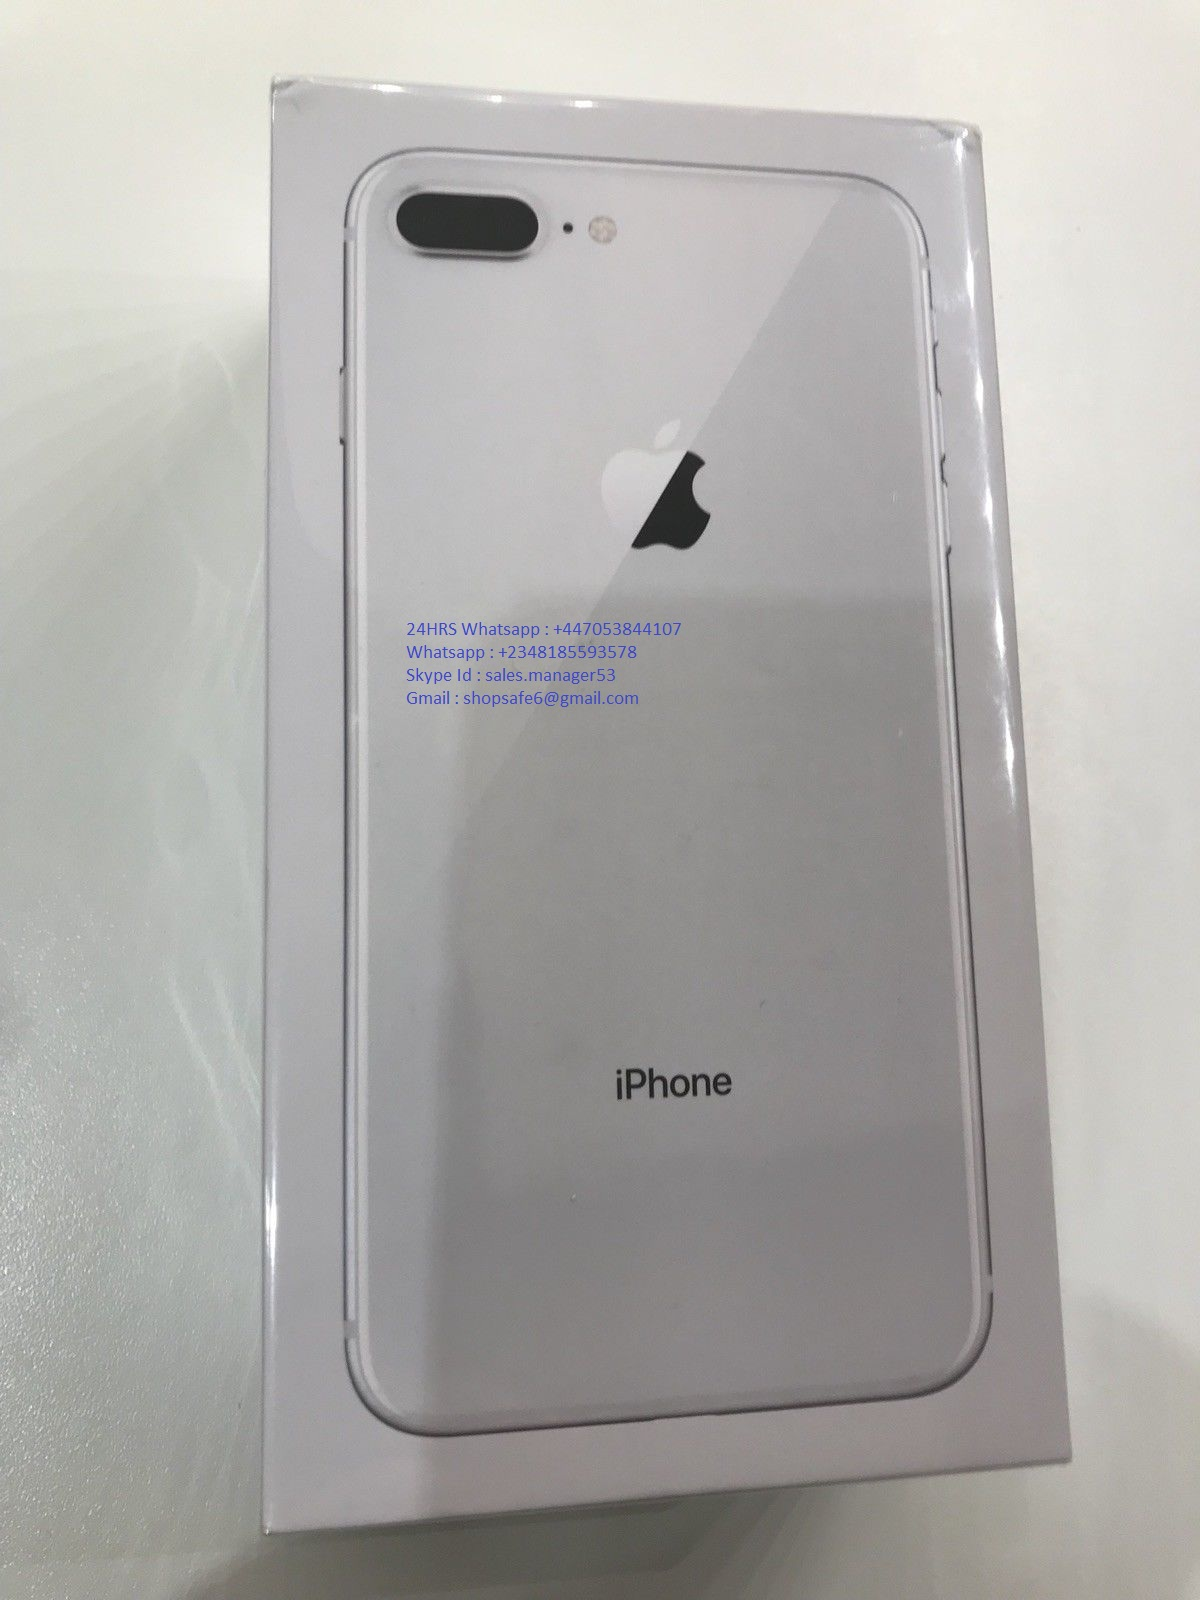 Xmas Bonanza Apple iPhone 8 256GB/Apple iPhone 8 Plus 256GB $500